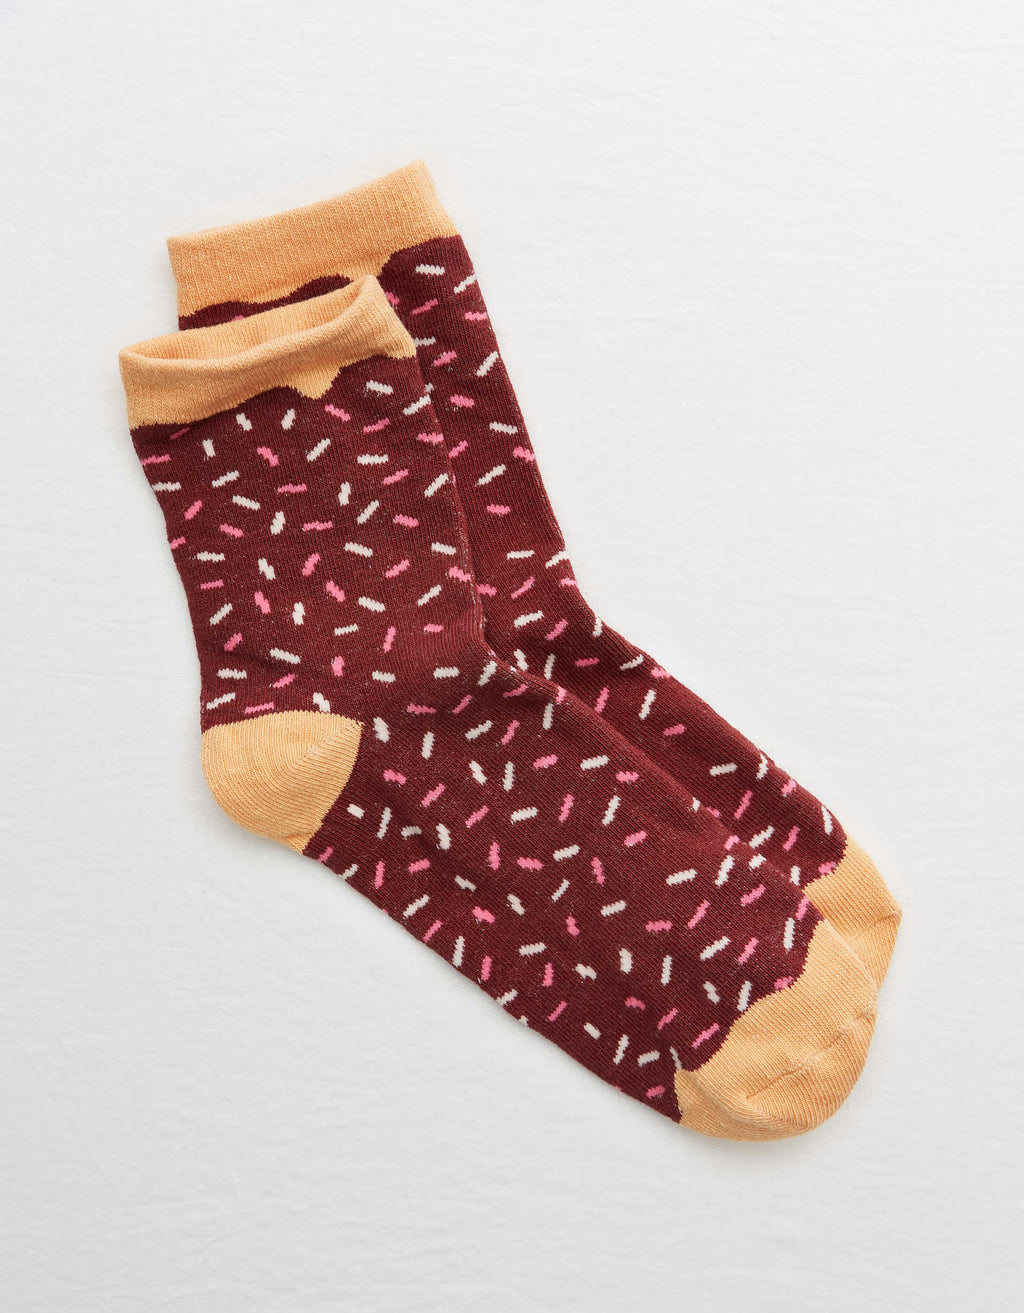 Donut Socks - Chocolate